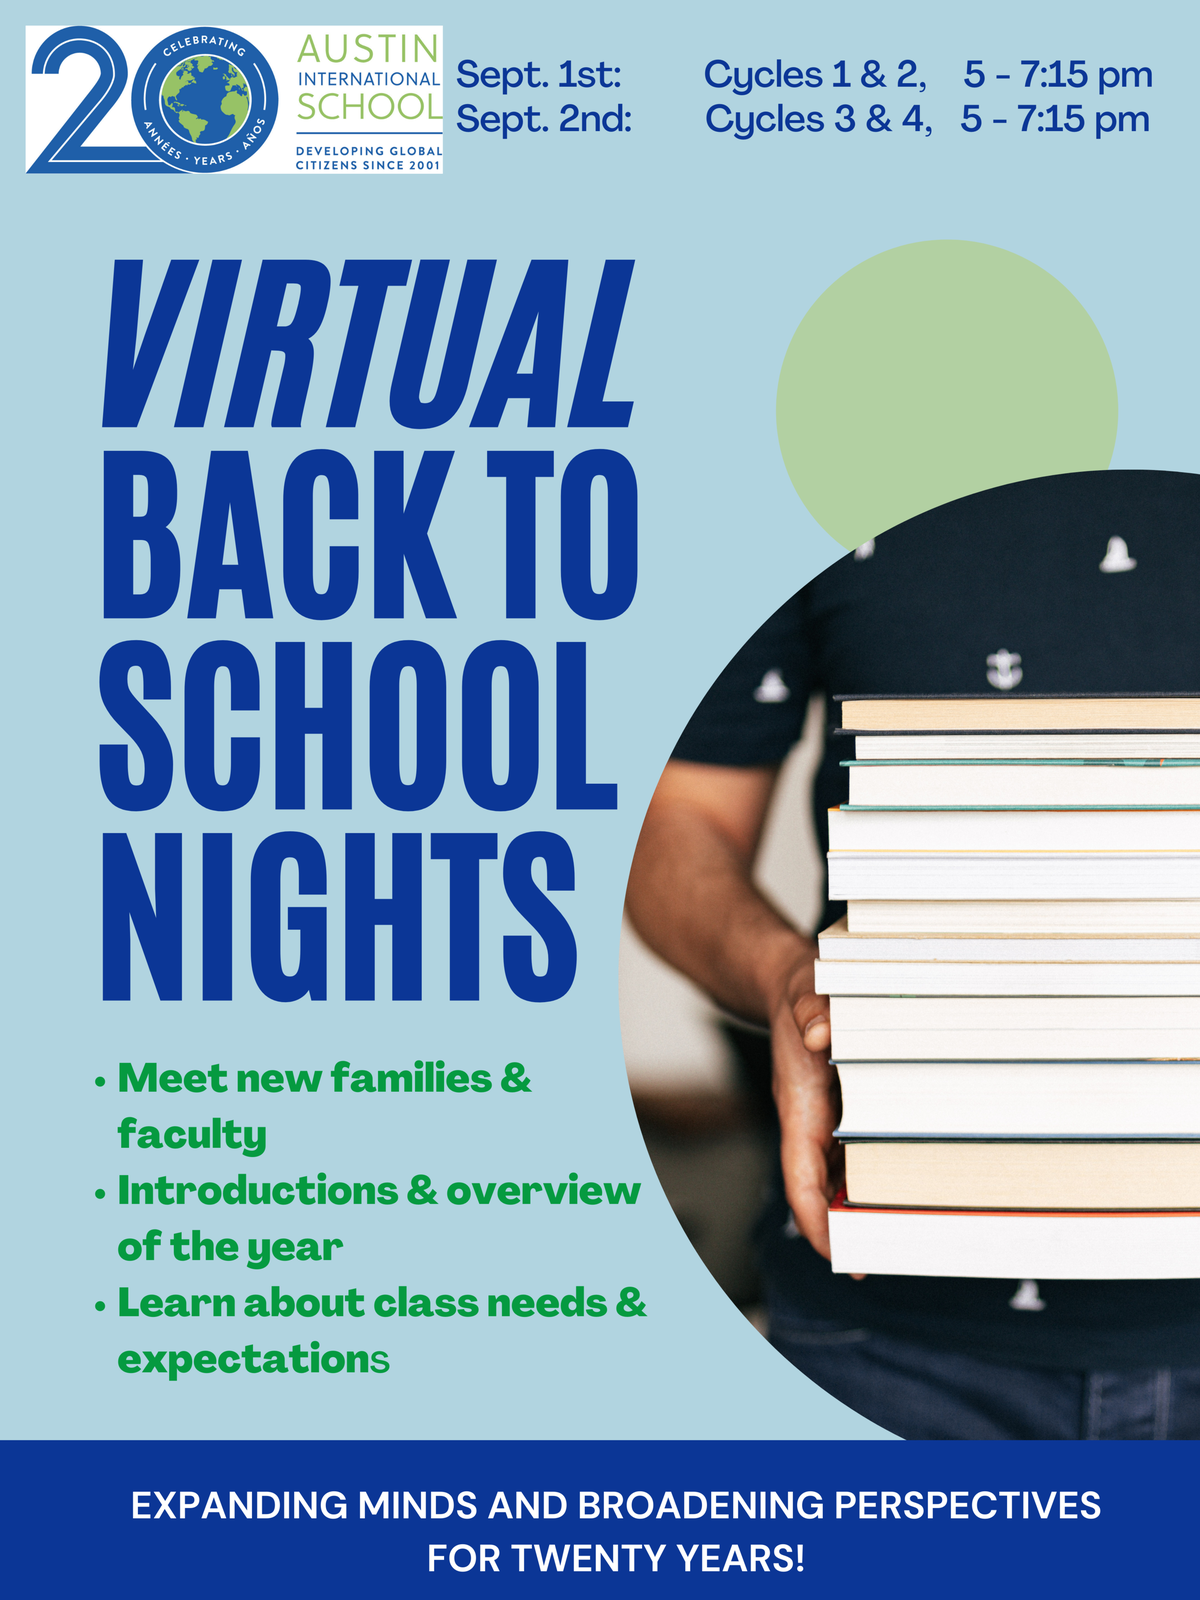 Back to School Night-Cycles 3 & 4